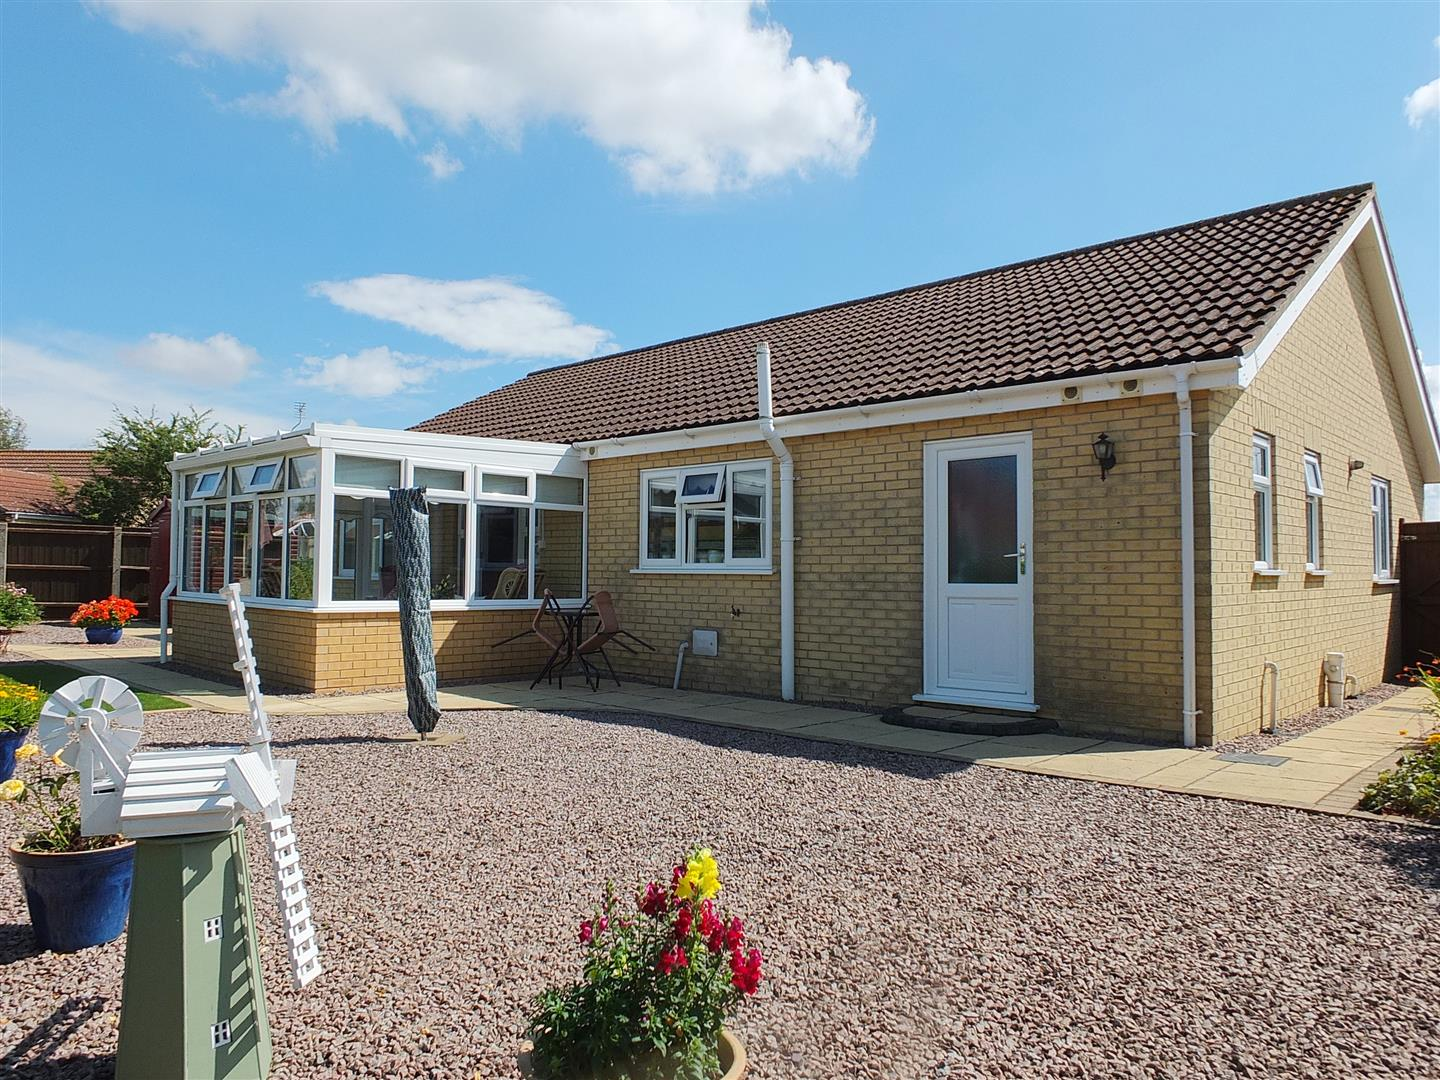 3 bed detached bungalow for sale in Long Sutton Spalding, PE12 9FT  - Property Image 19